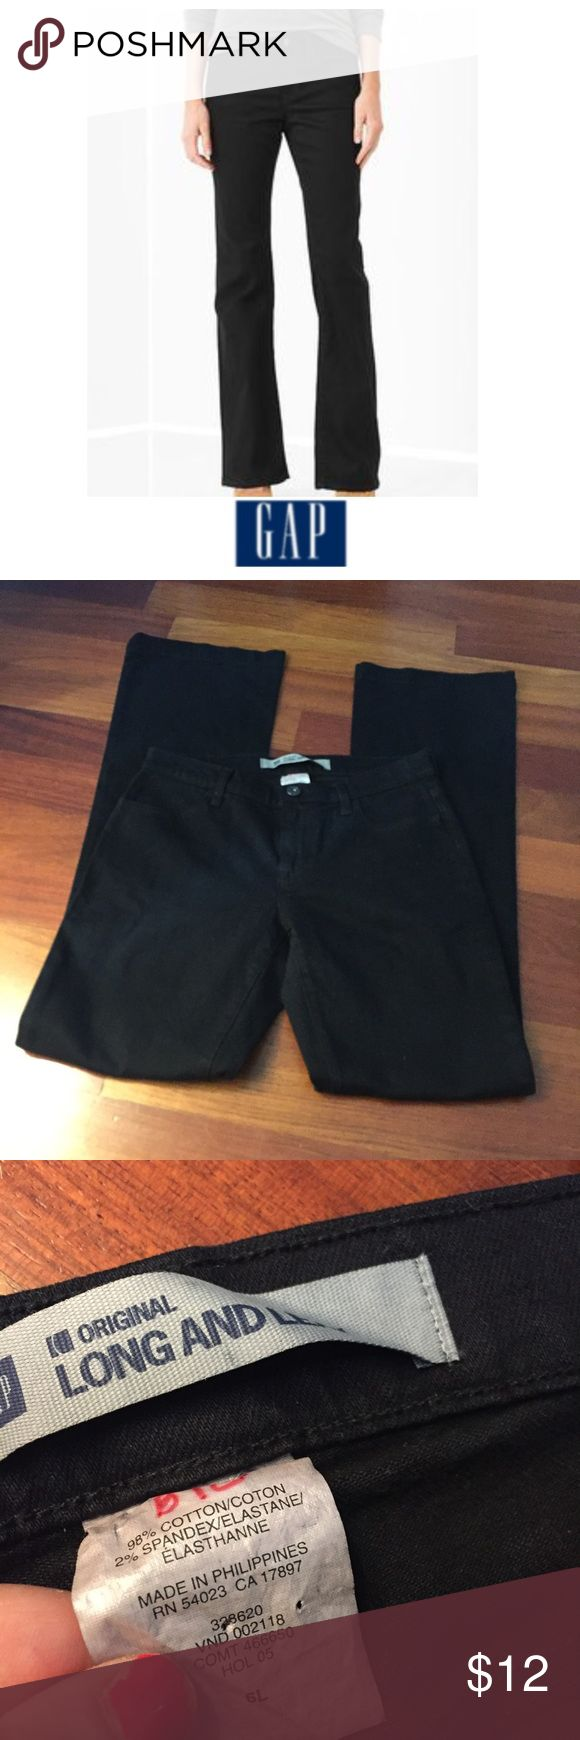 GAP Tall Long and Lean Black Jeans GAP Tall Long and Lean Black Jeans. 9 inch rise, Mid Rise. 35 inch inseam. Gently worn. Great condition. Feel free to make an offer or bundle & save! GAP Jeans Boot Cut